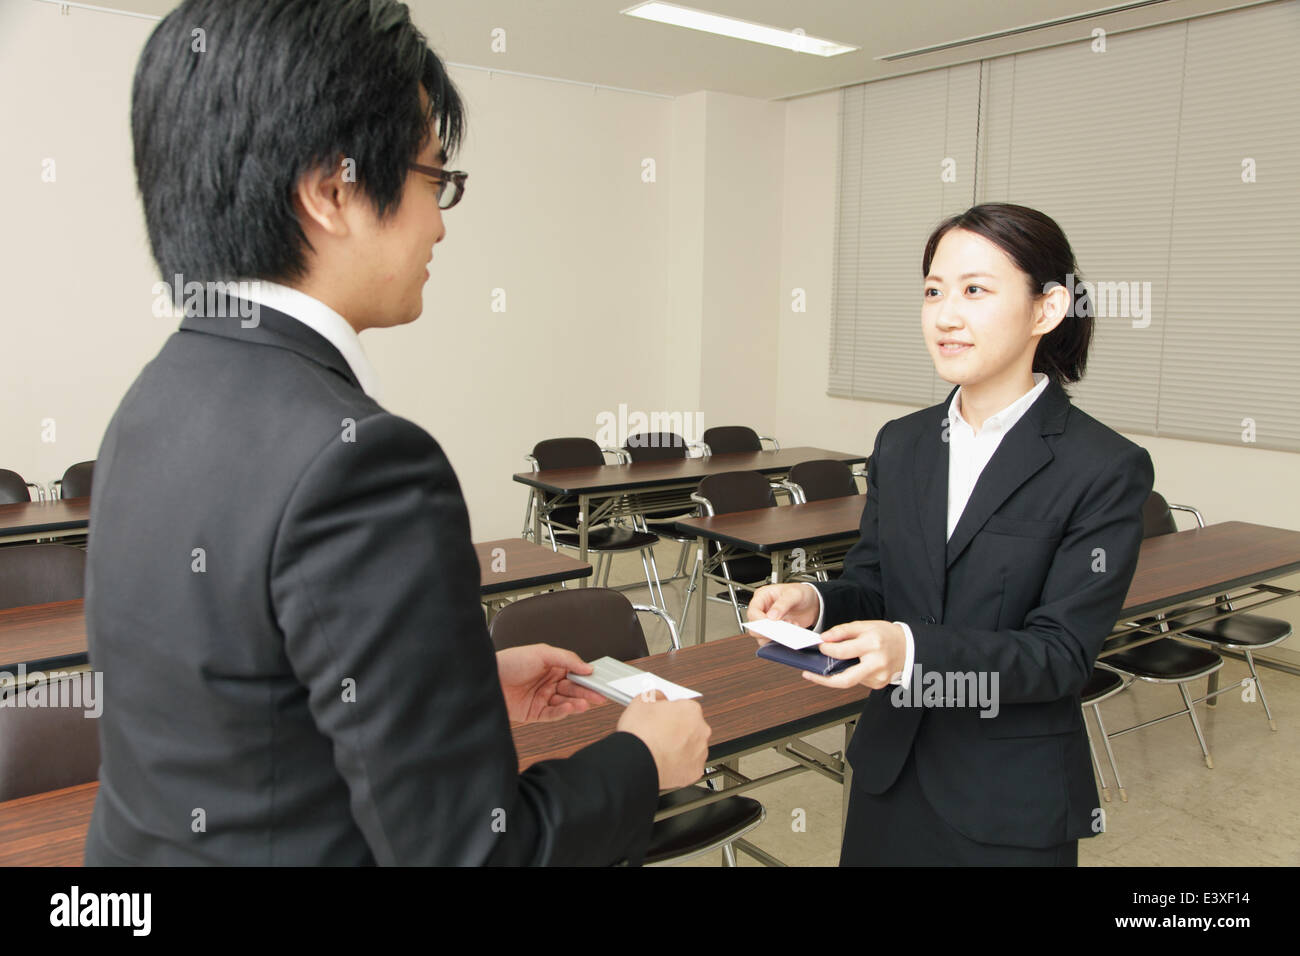 japanese business people exchanging business cards stock photo